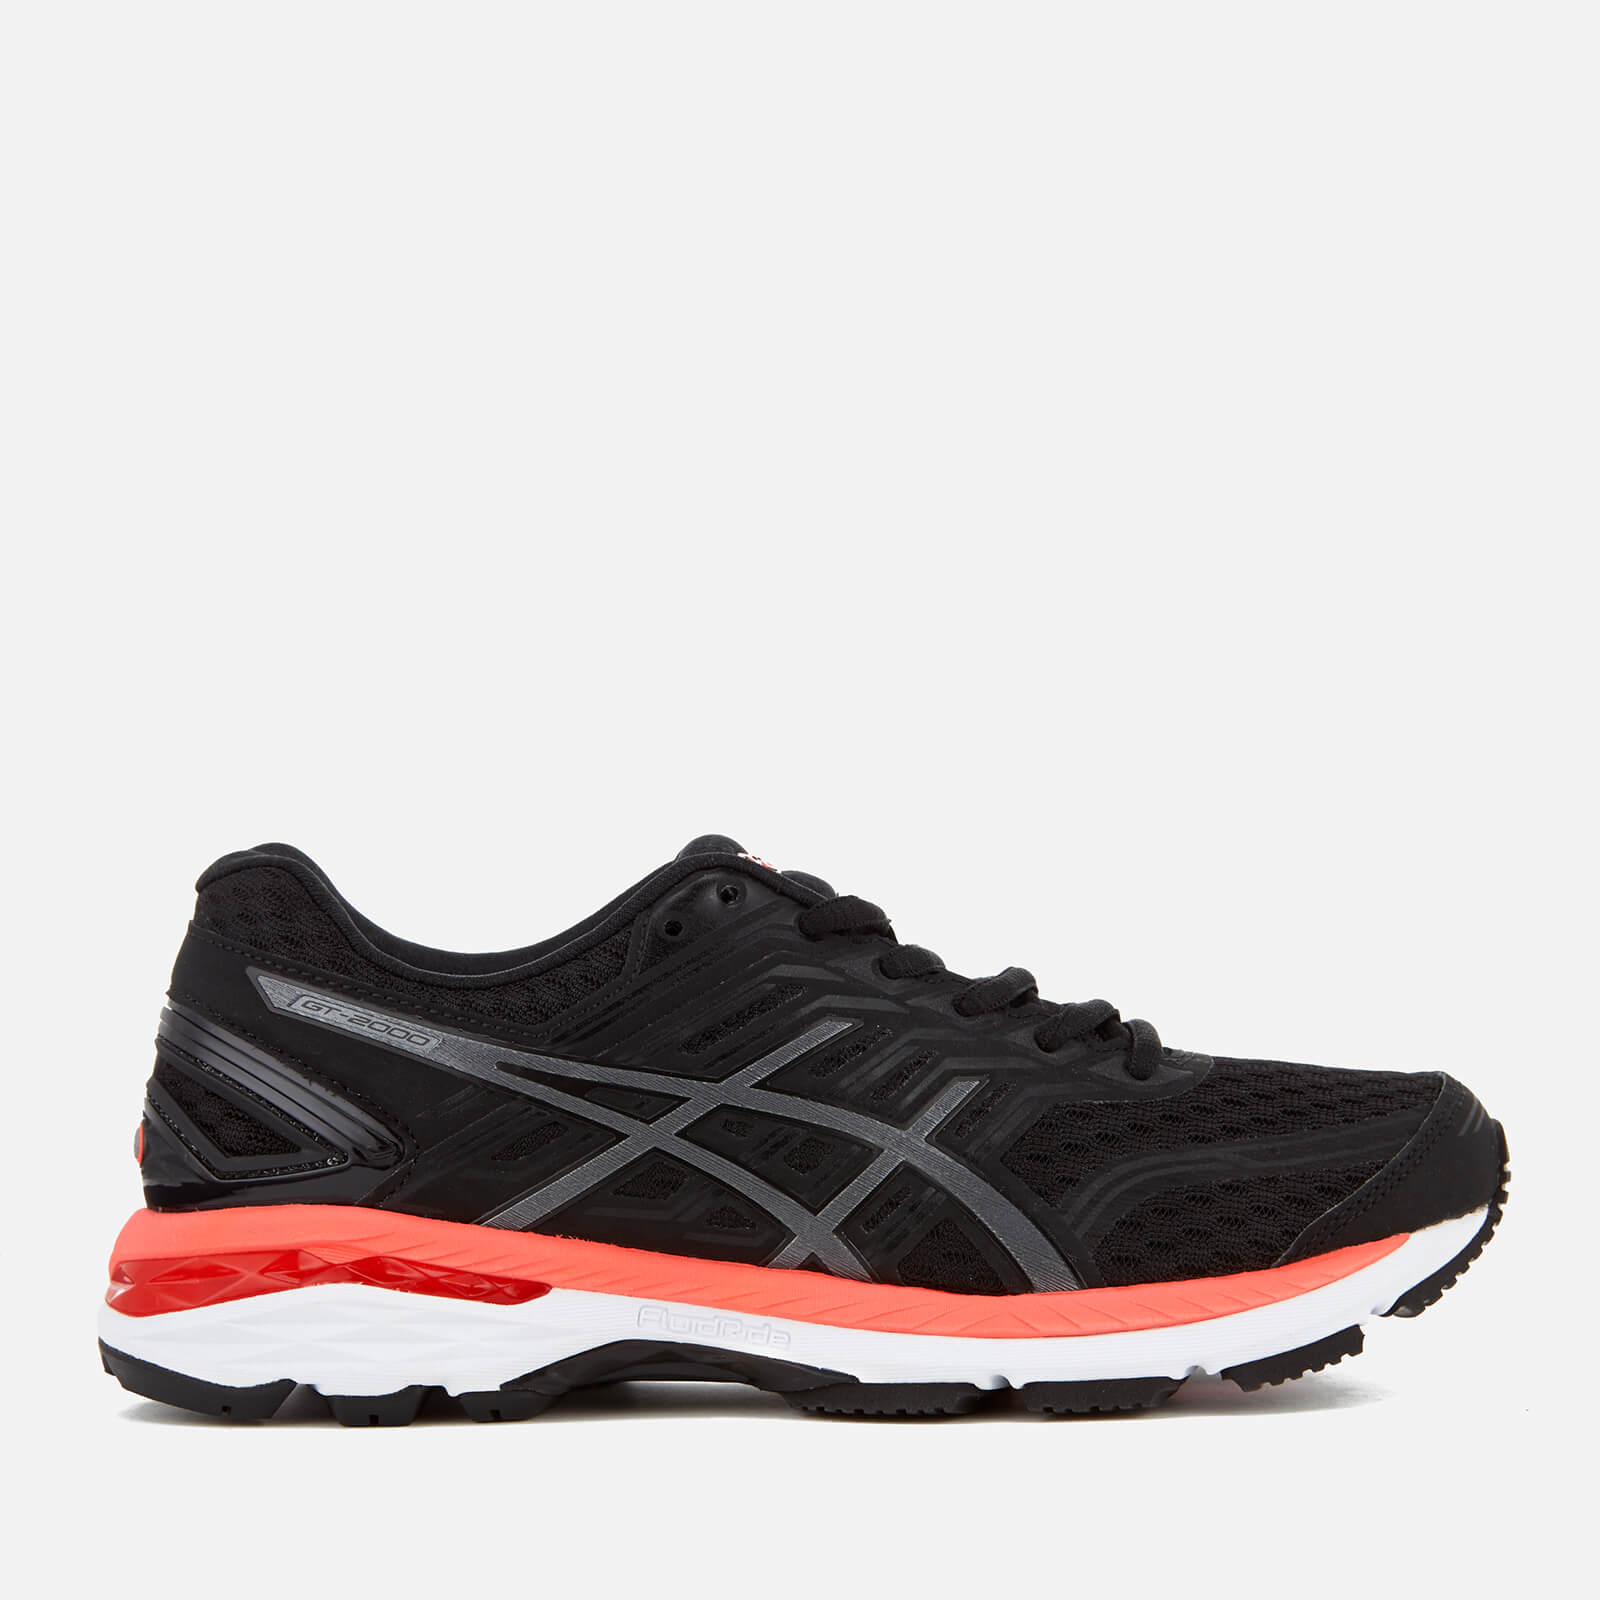 new concept a5592 36847 Asics Running Women's GT-2000 5 Trainers - Black/Carbon/Hot Orange